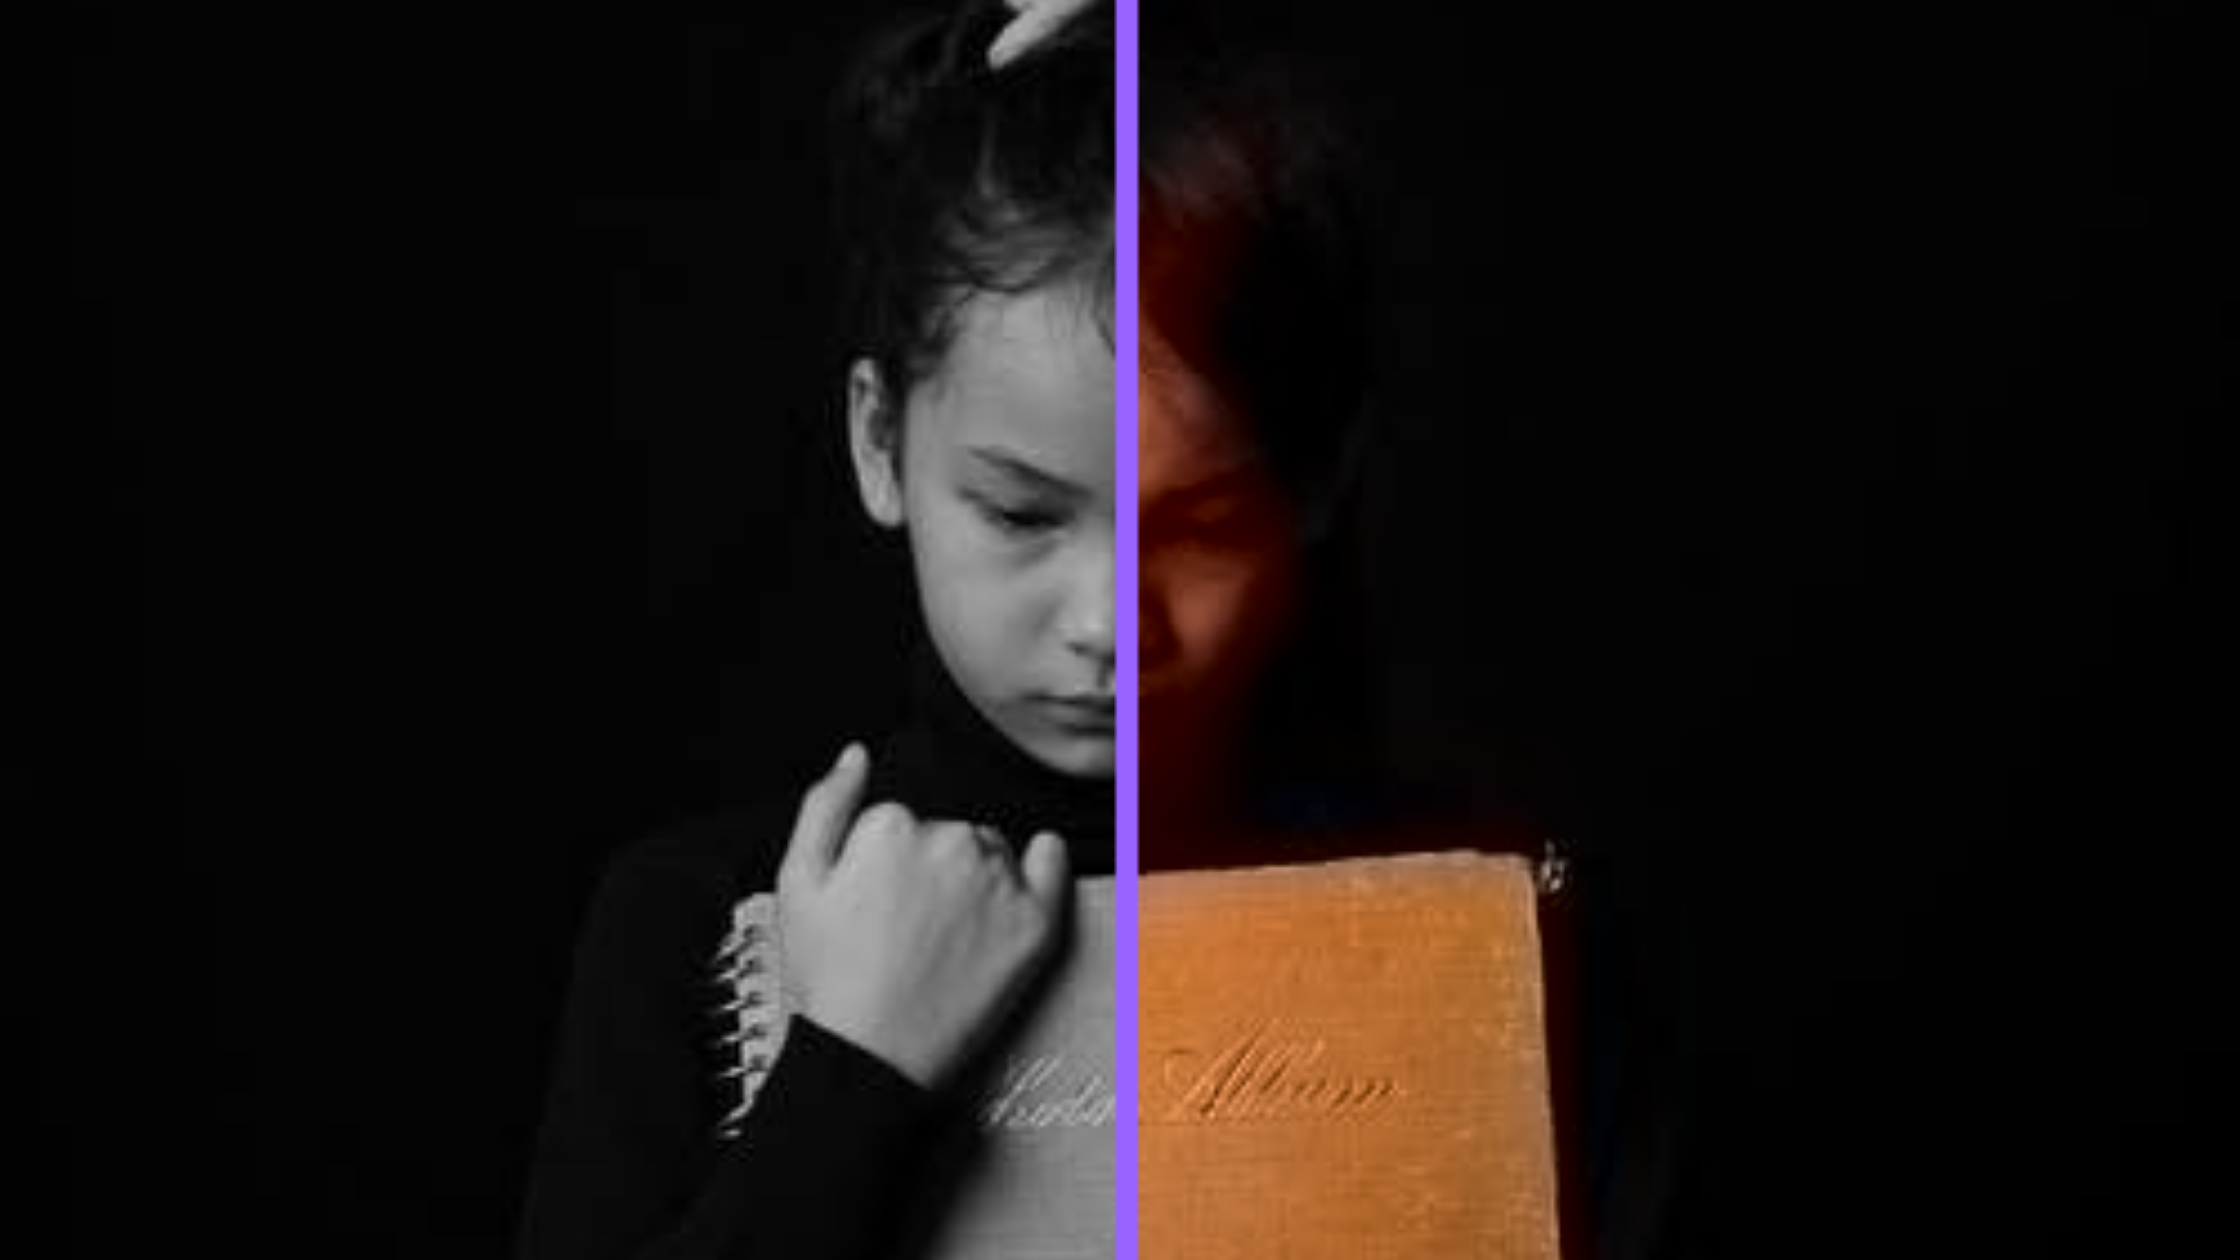 i will Colorize Your Black and White Images